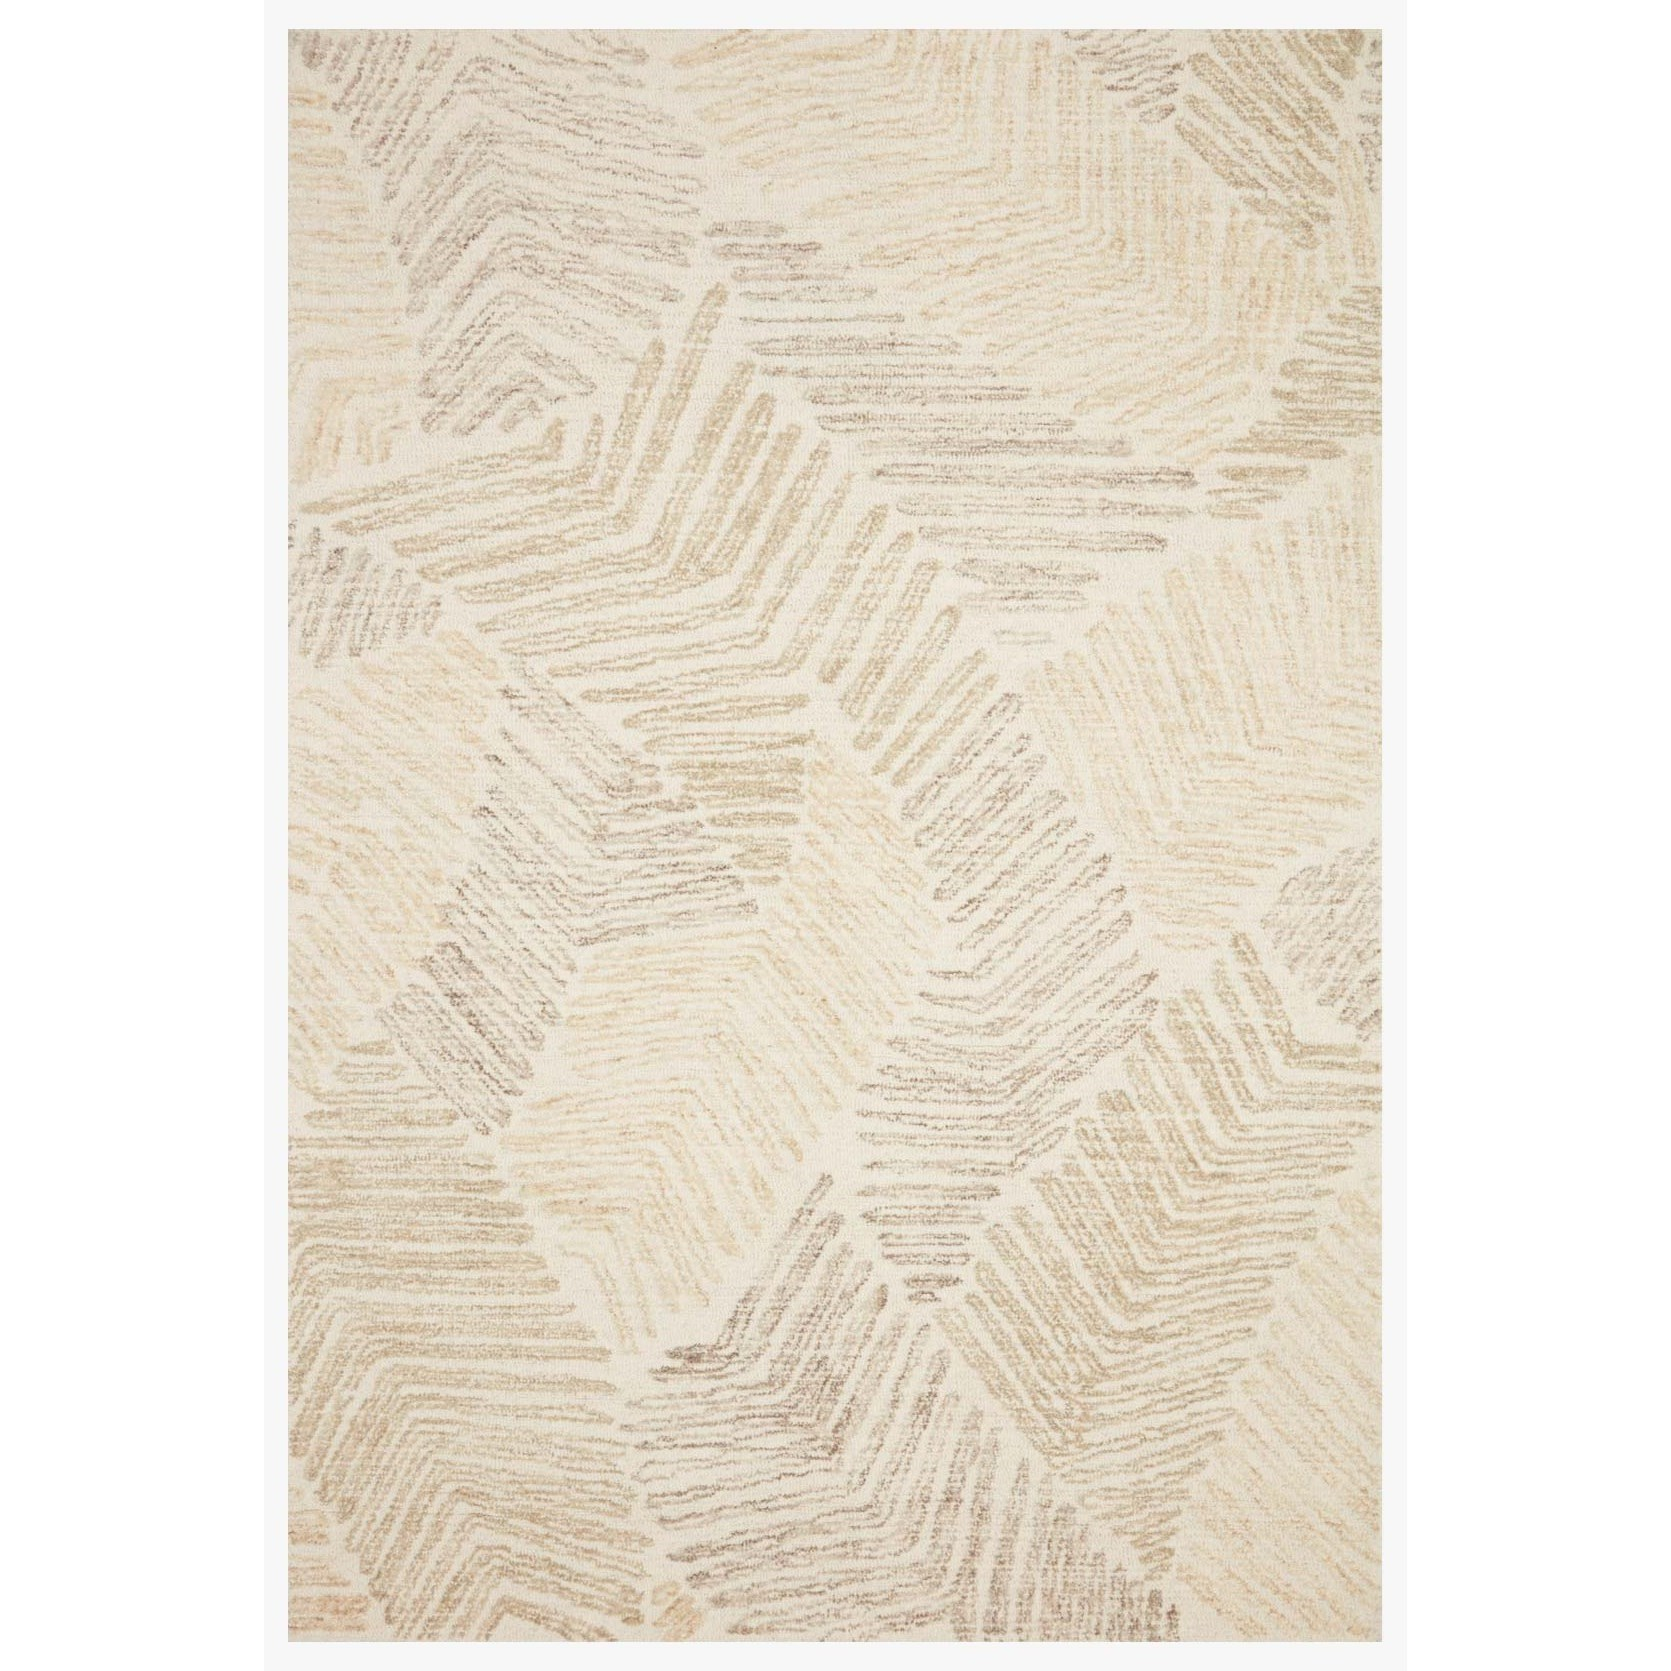 "Milo 7'9"" x 9'9"" Olive / Natural Rug by Loloi Rugs at Virginia Furniture Market"